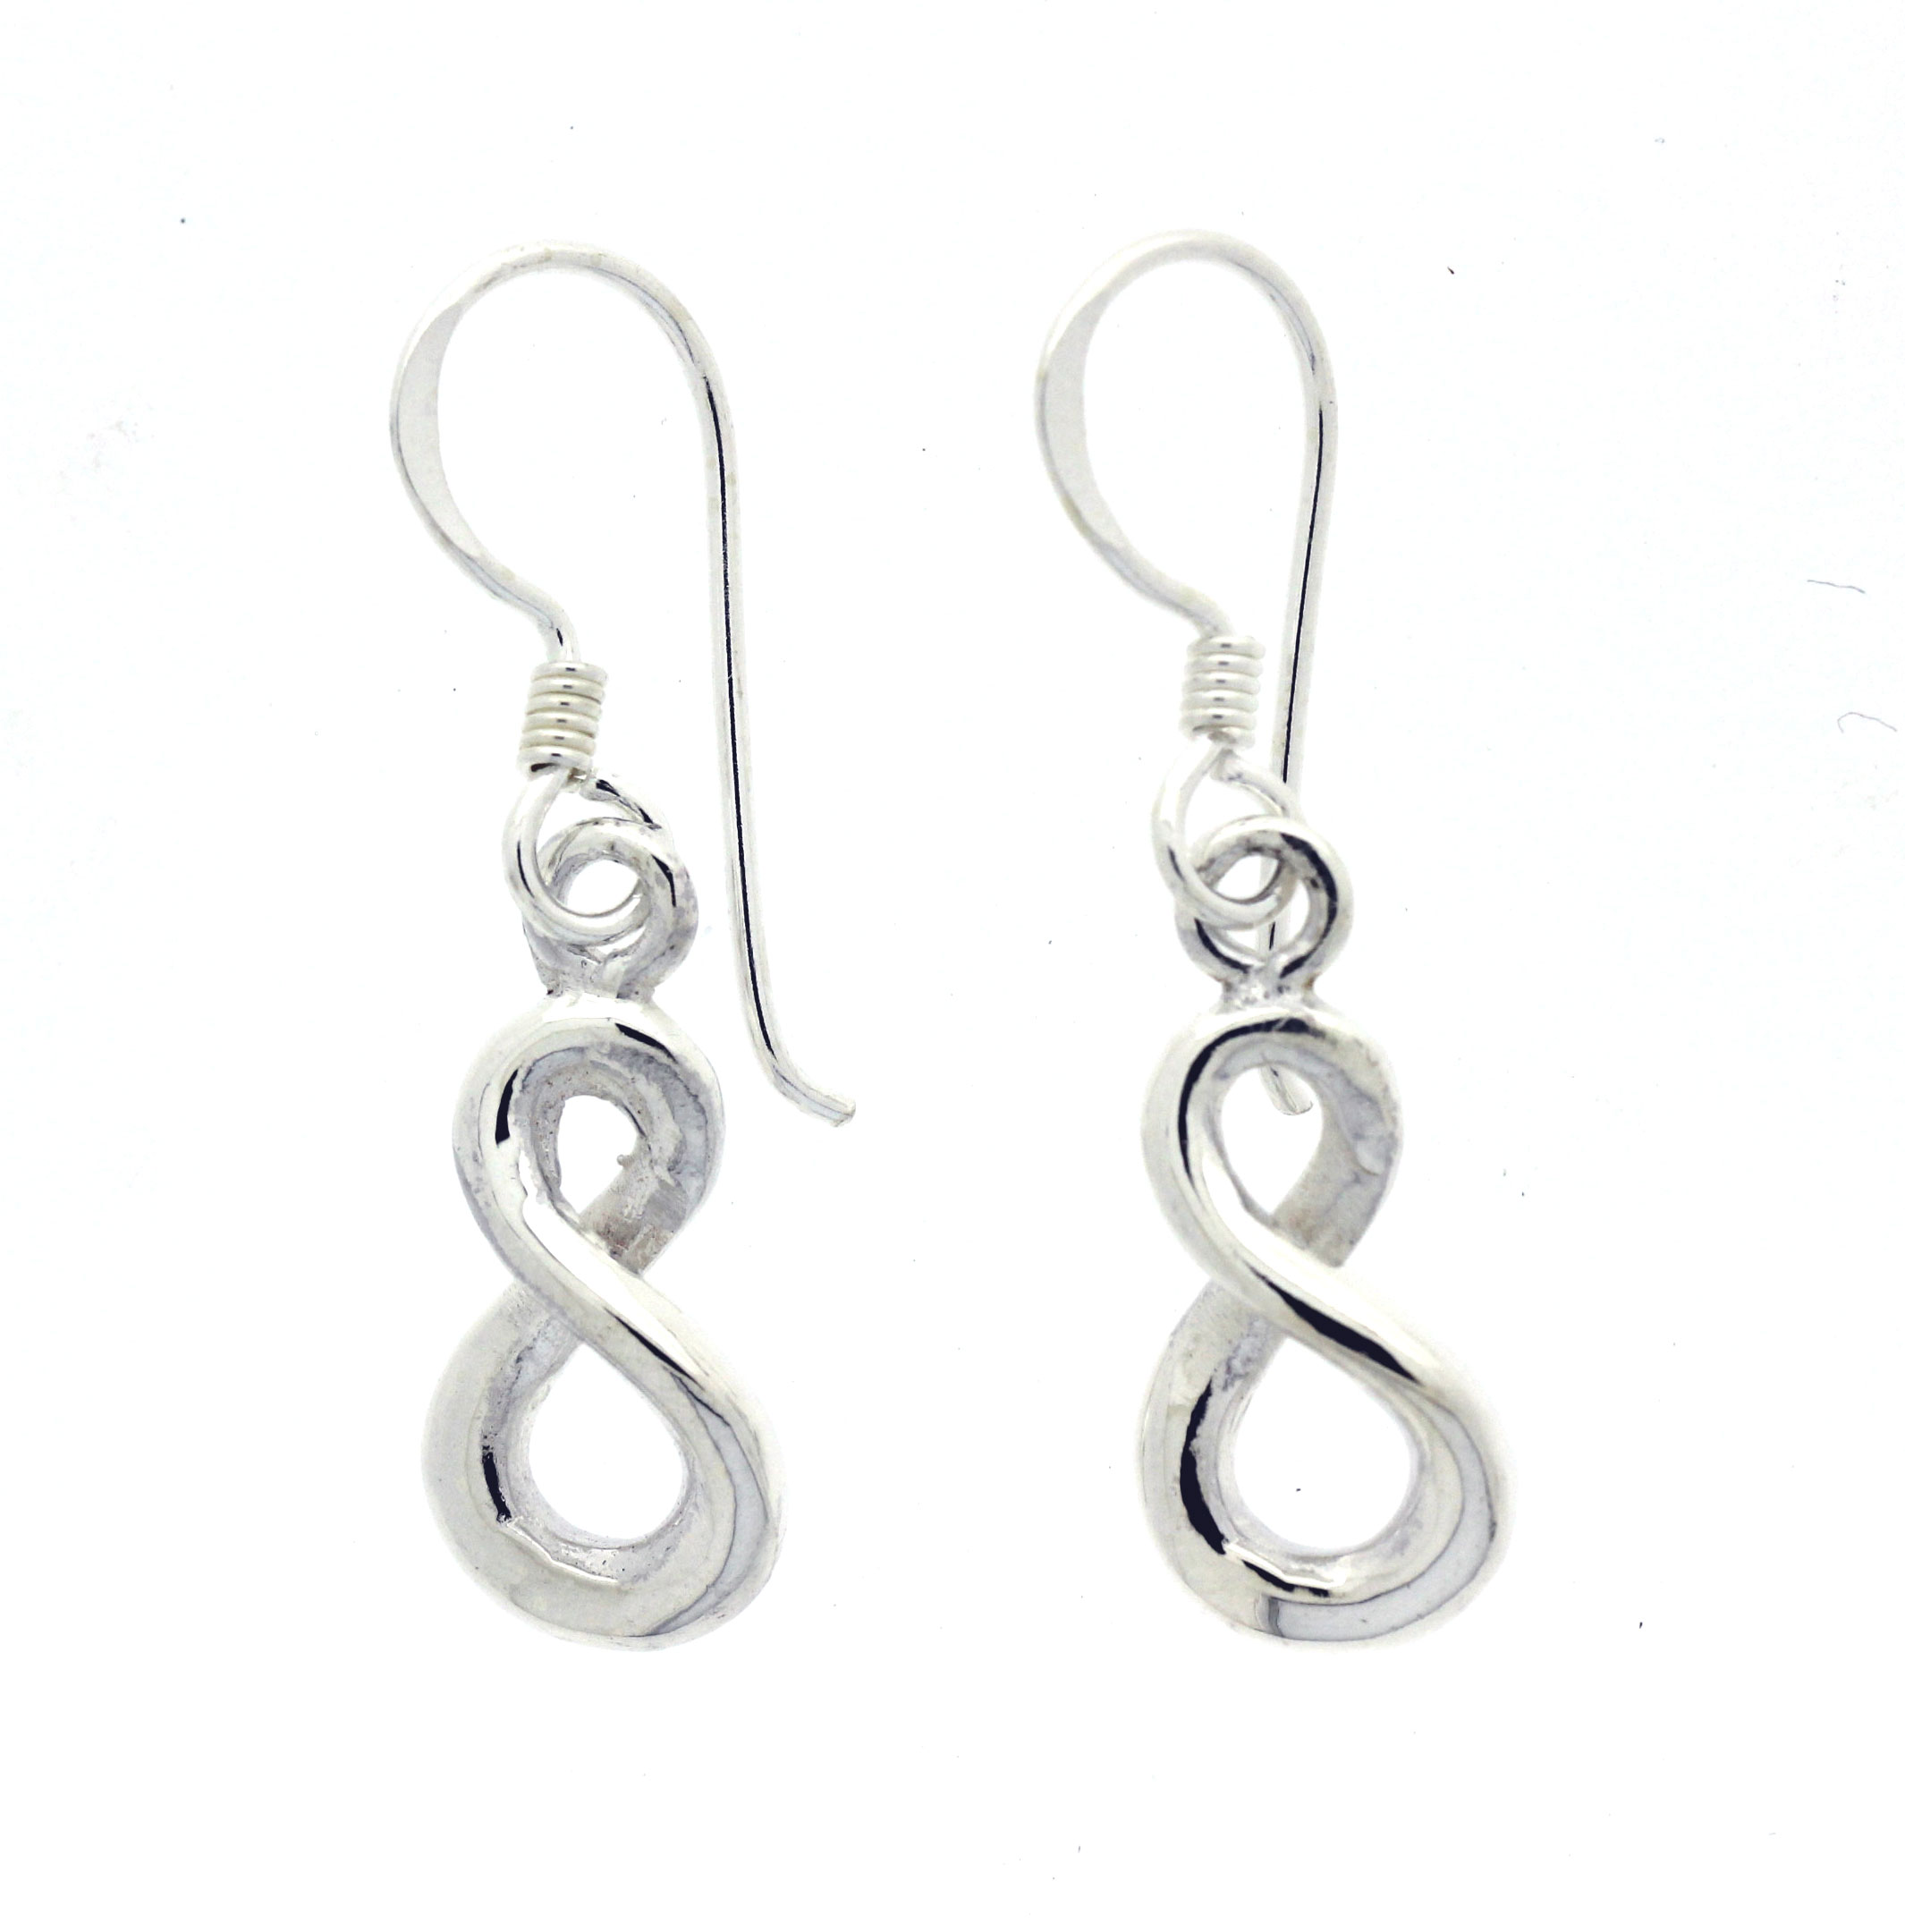 plain hook details delicate an a loop sleek hoop thread pe at dangle sterling slide silver feature infinity style the meaning end aeravida behind products with earrings